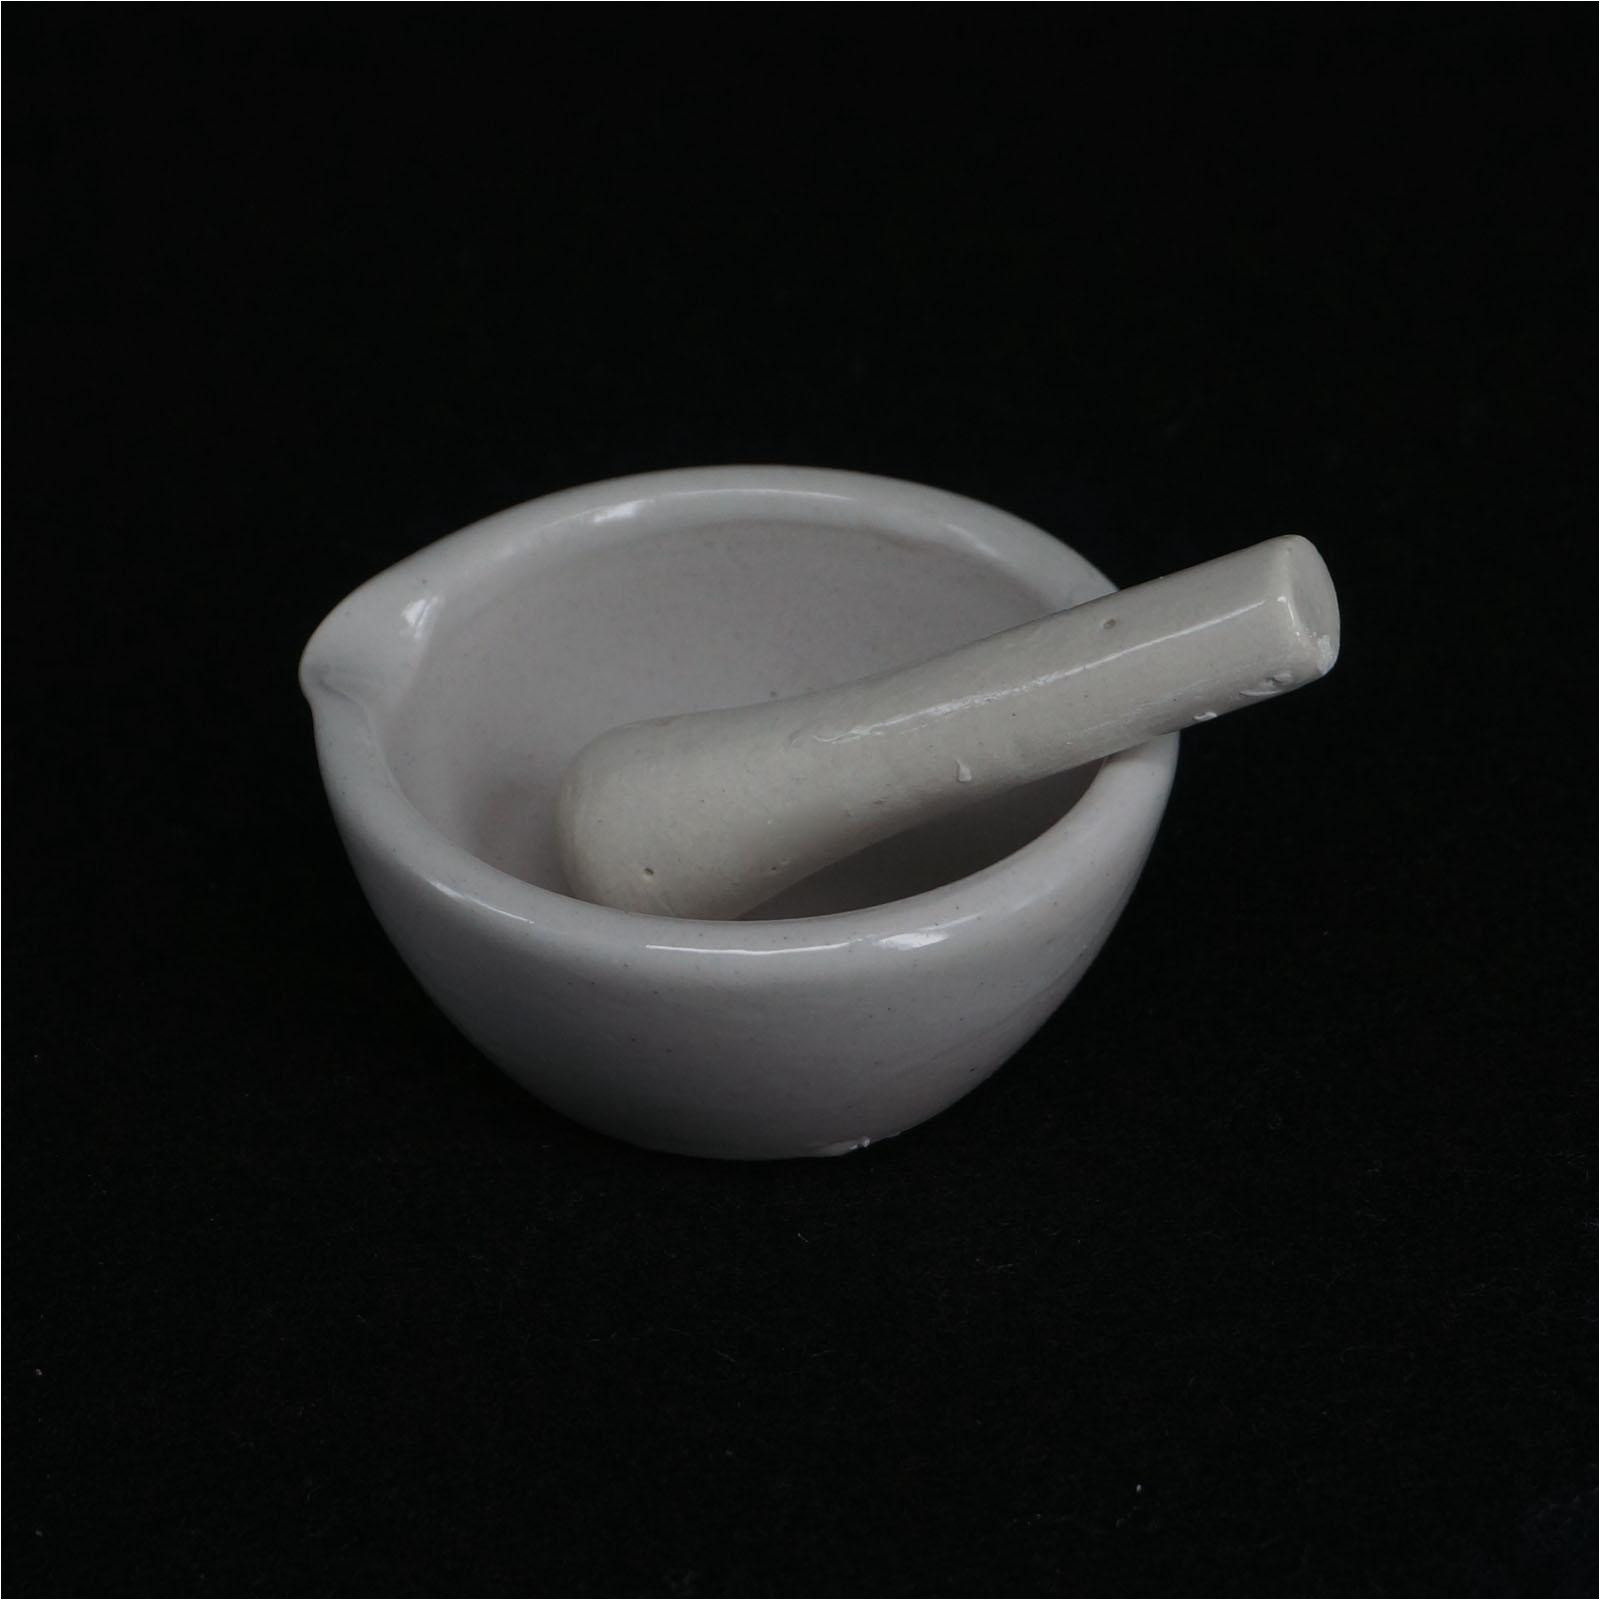 80mm ceramic porcelain mortar and pestle mix grind bowl set herbs kitchen